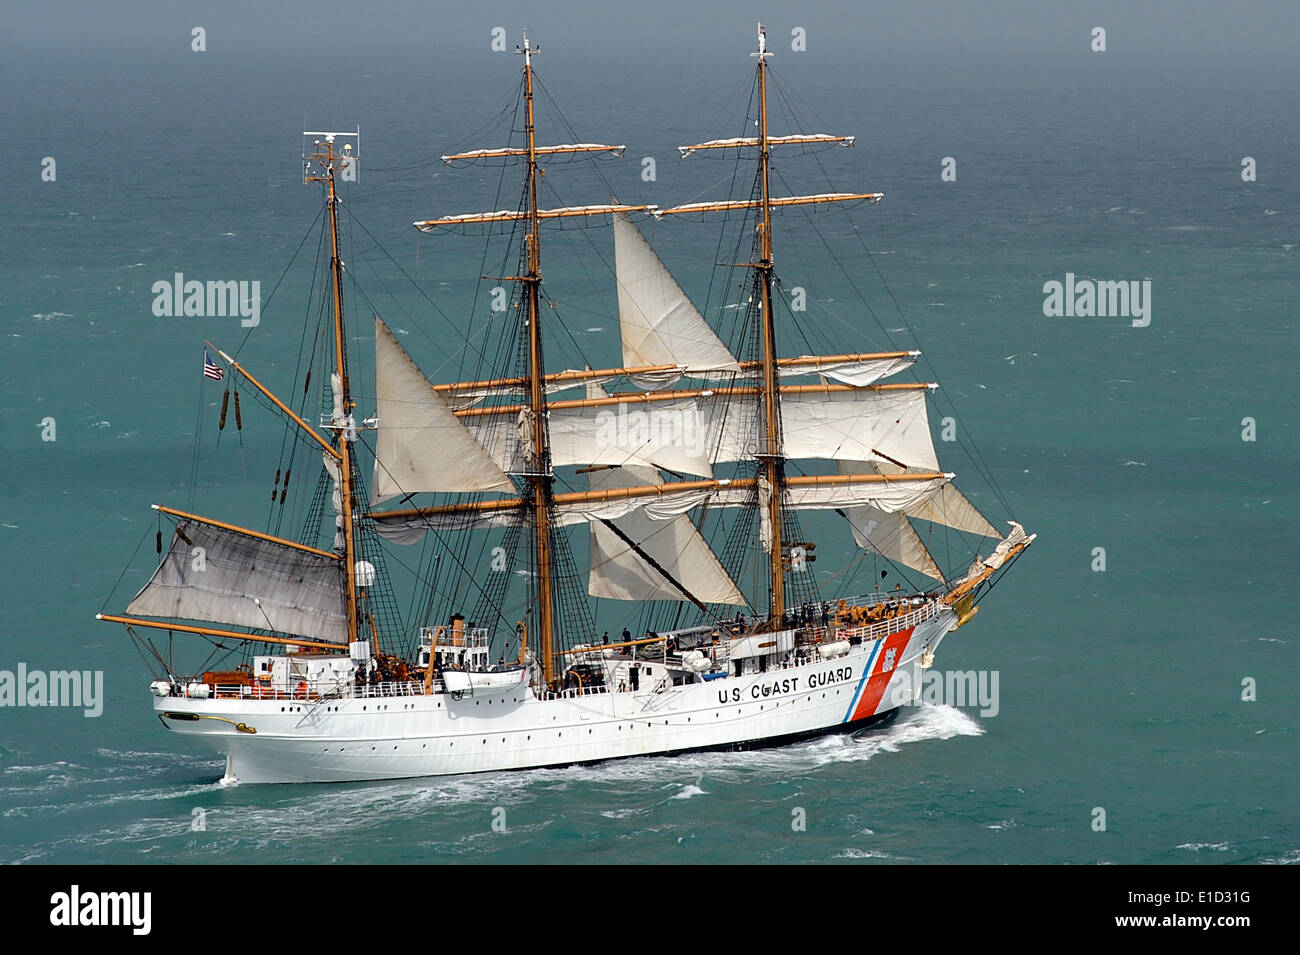 2 327 Stock Photos Images Alamy Ships Tall Google Search Book Covers Diagrams Bloody The Crew Aboard Uscgc Eagle Wix Takes In Sails